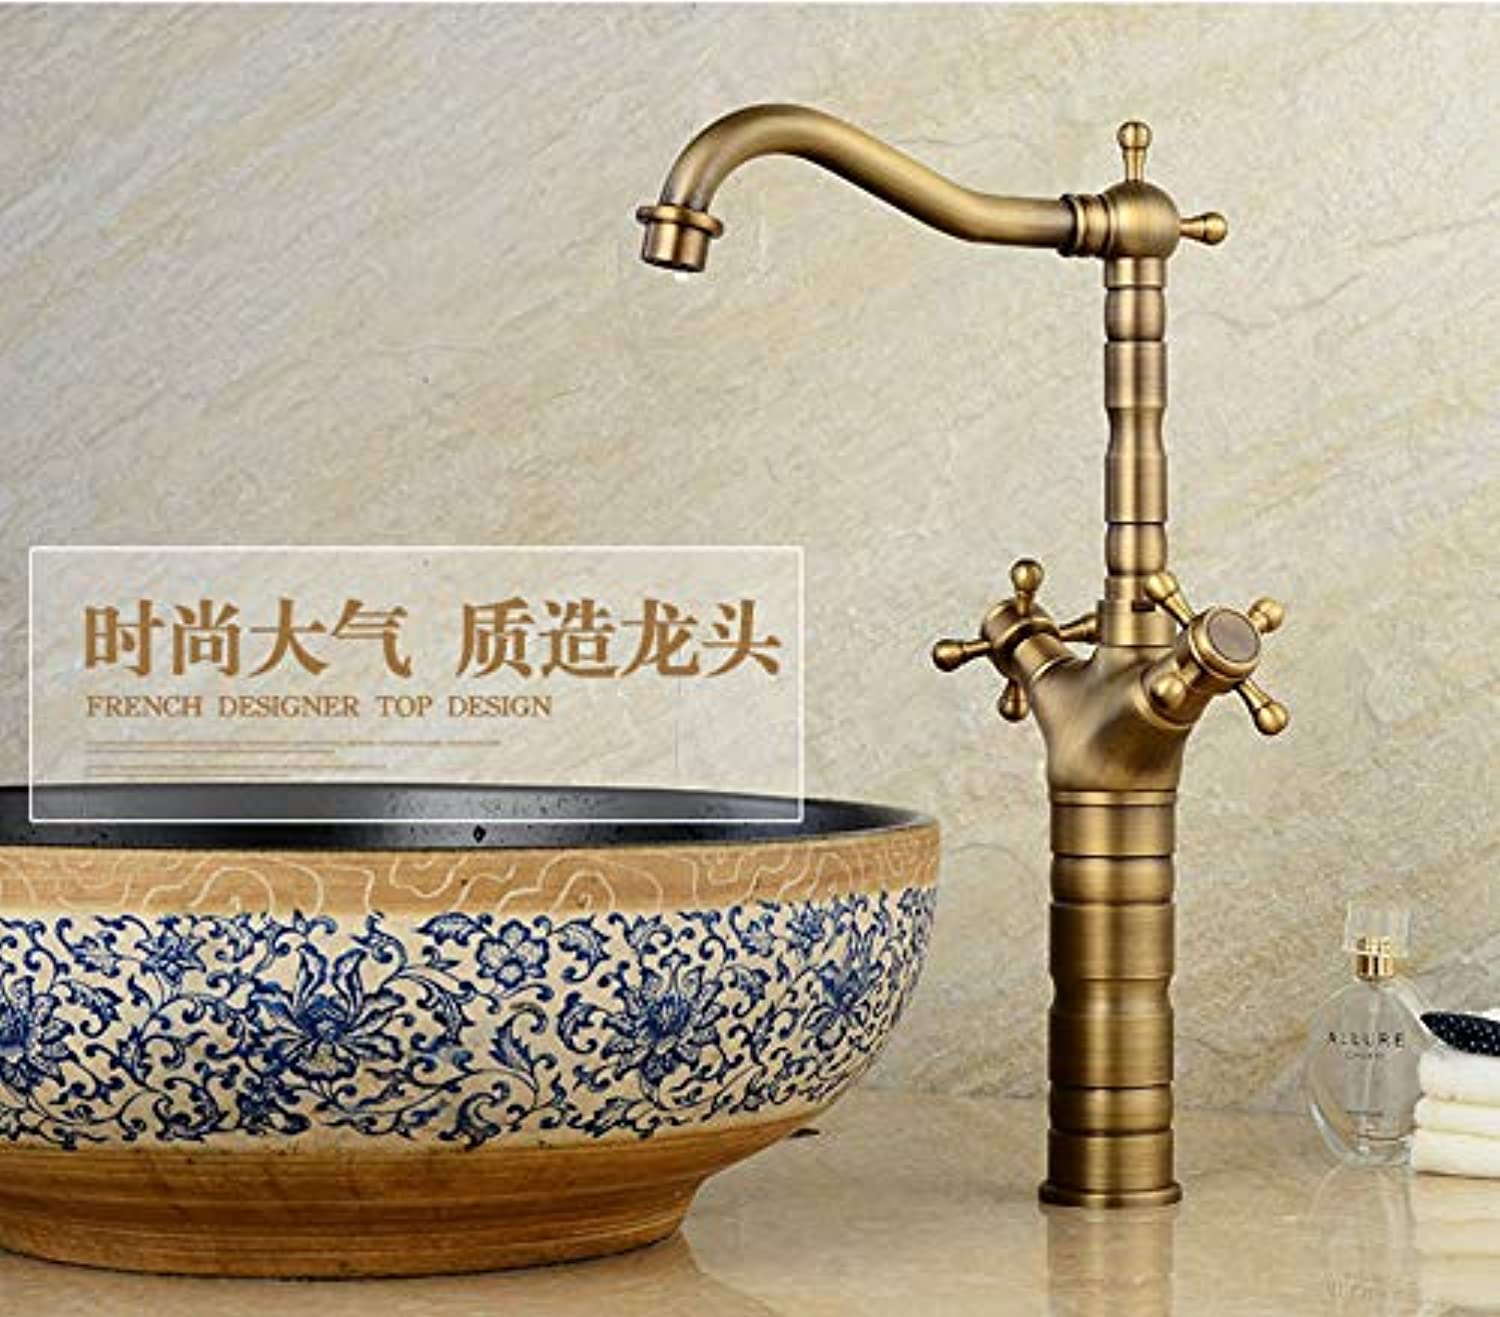 Makeyong New Deck Bathroom Basin Sink Mixer Tap Polished Antique Bronze Basin Faucet Bathroom Faucet Sink Tap